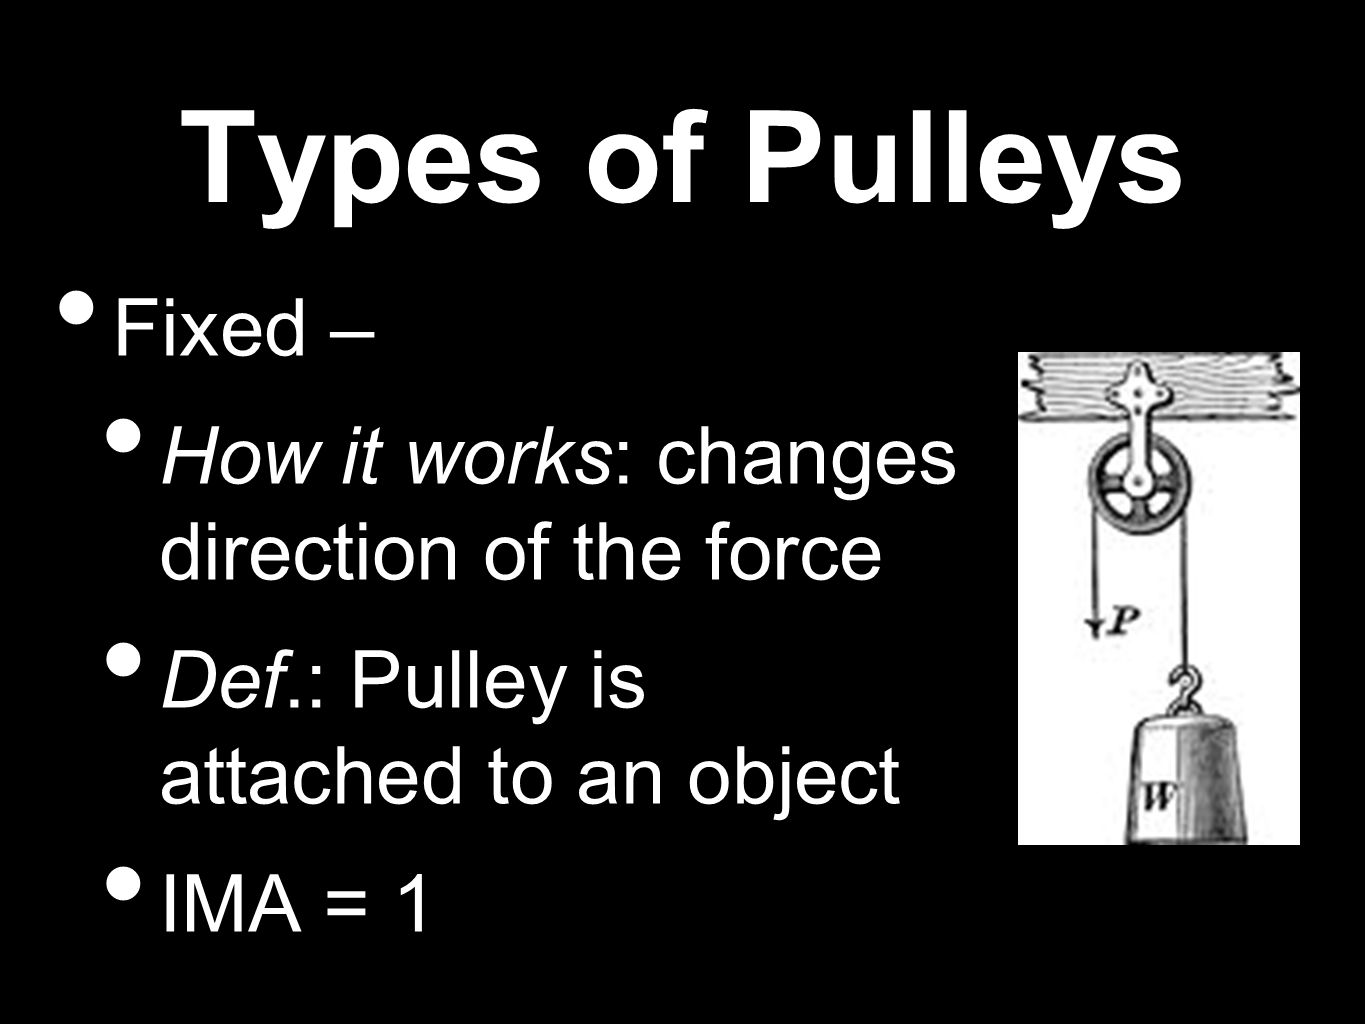 Types of Pulleys Fixed – How it works: changes direction of the force Def.: Pulley is attached to an object IMA = 1